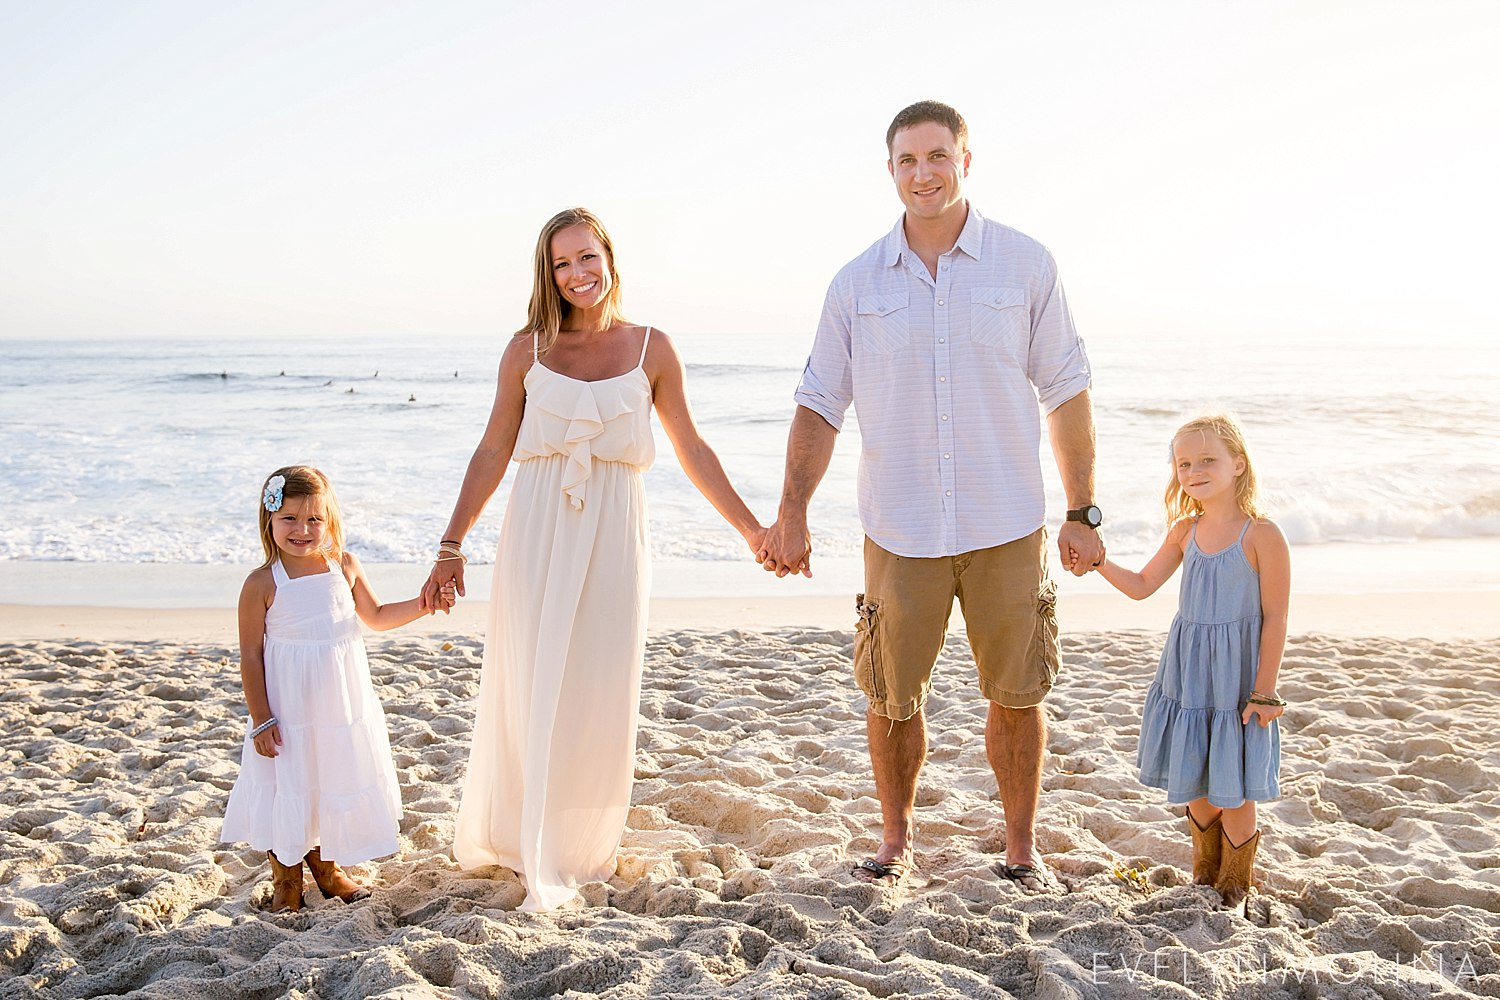 La-Jolla-Family-Photographer-Bast_0026.jpg